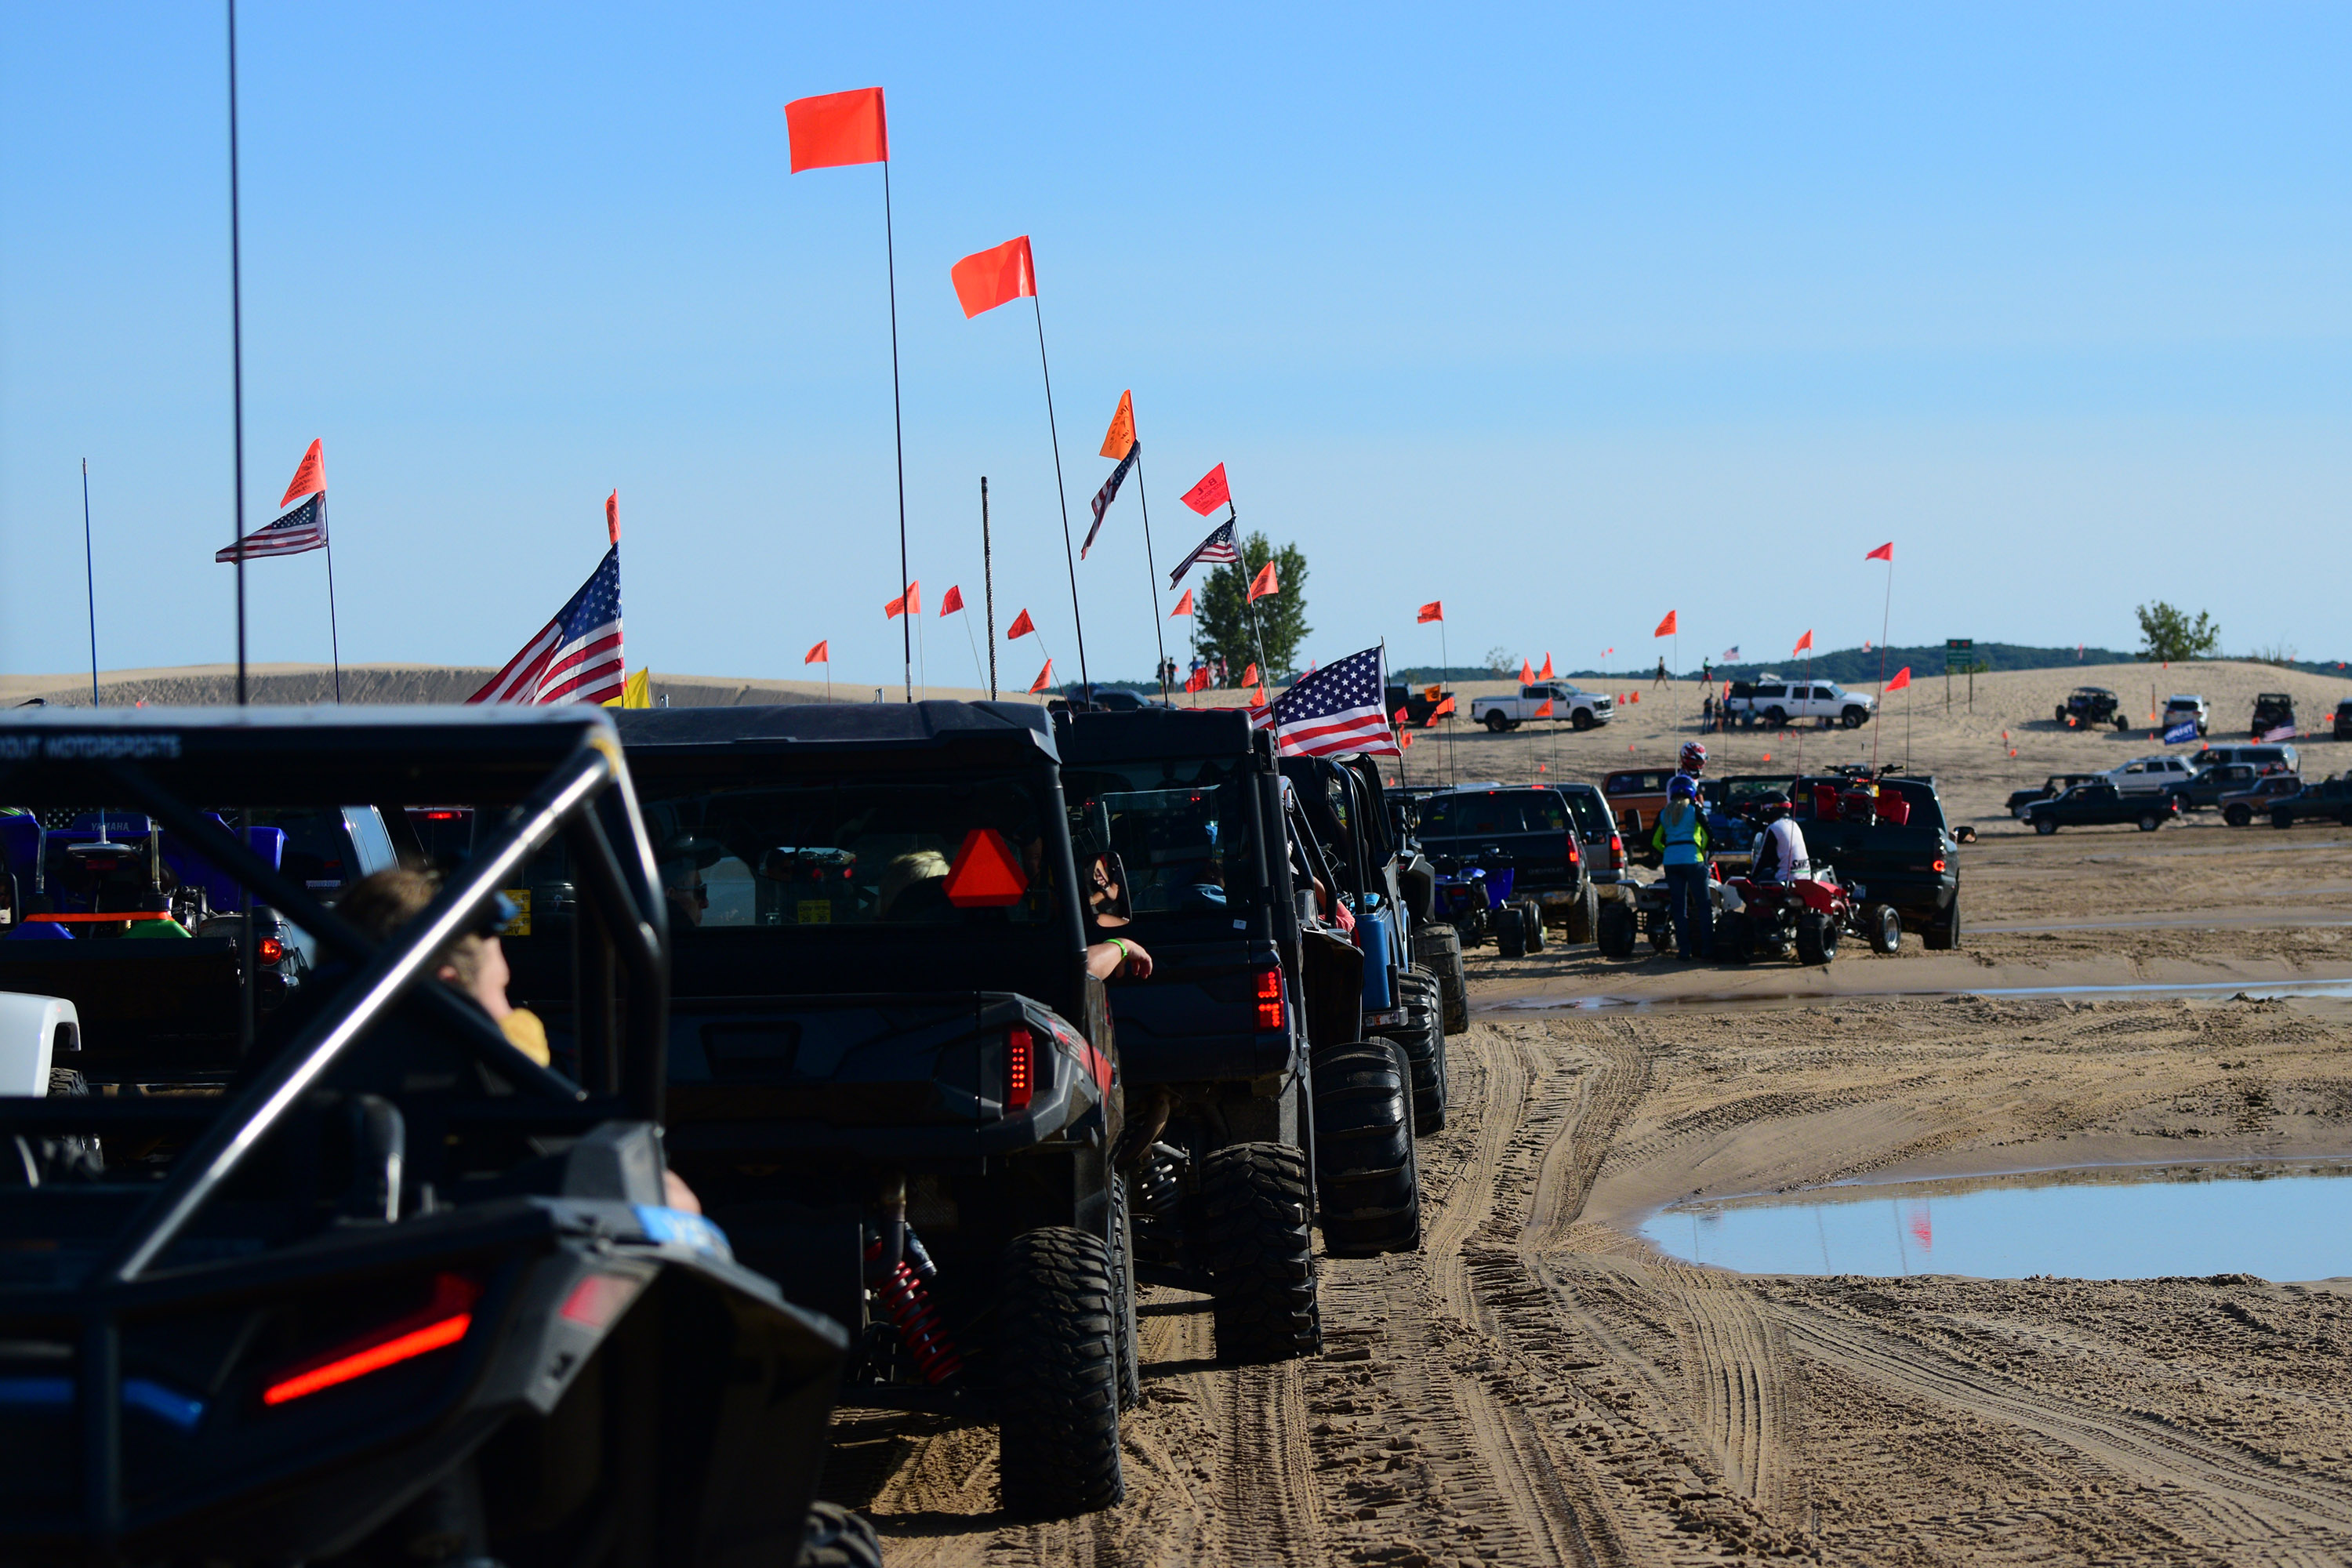 Waiting in line to exit the Silver Lake Sand Dunes on Labor Day weekend - the line was an hour and a half long